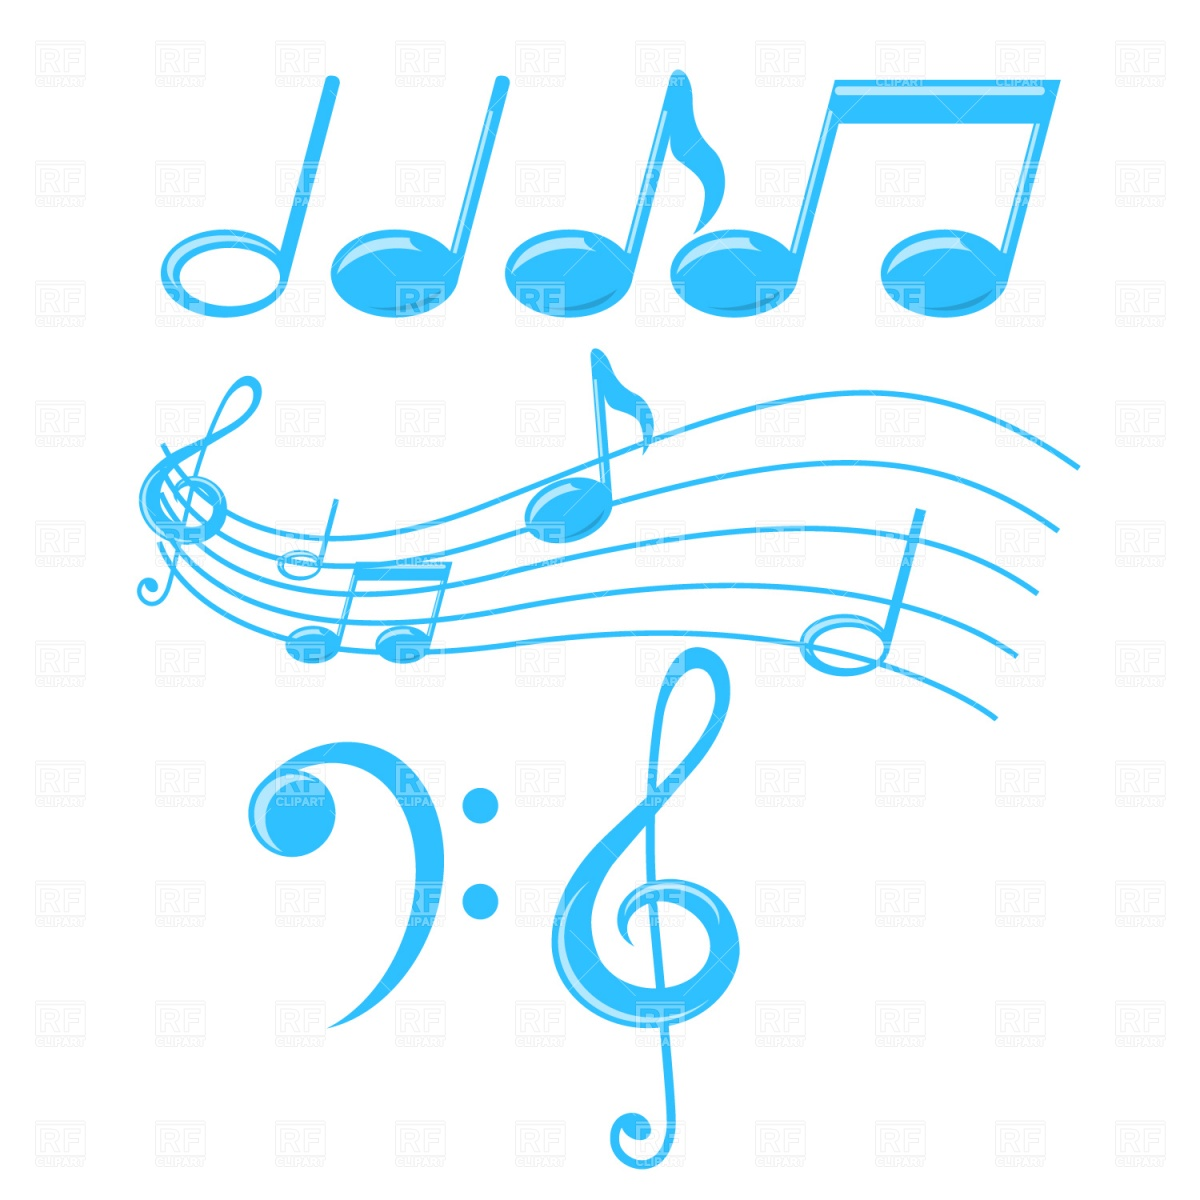 Music Notes and Treble Clef Clip Art